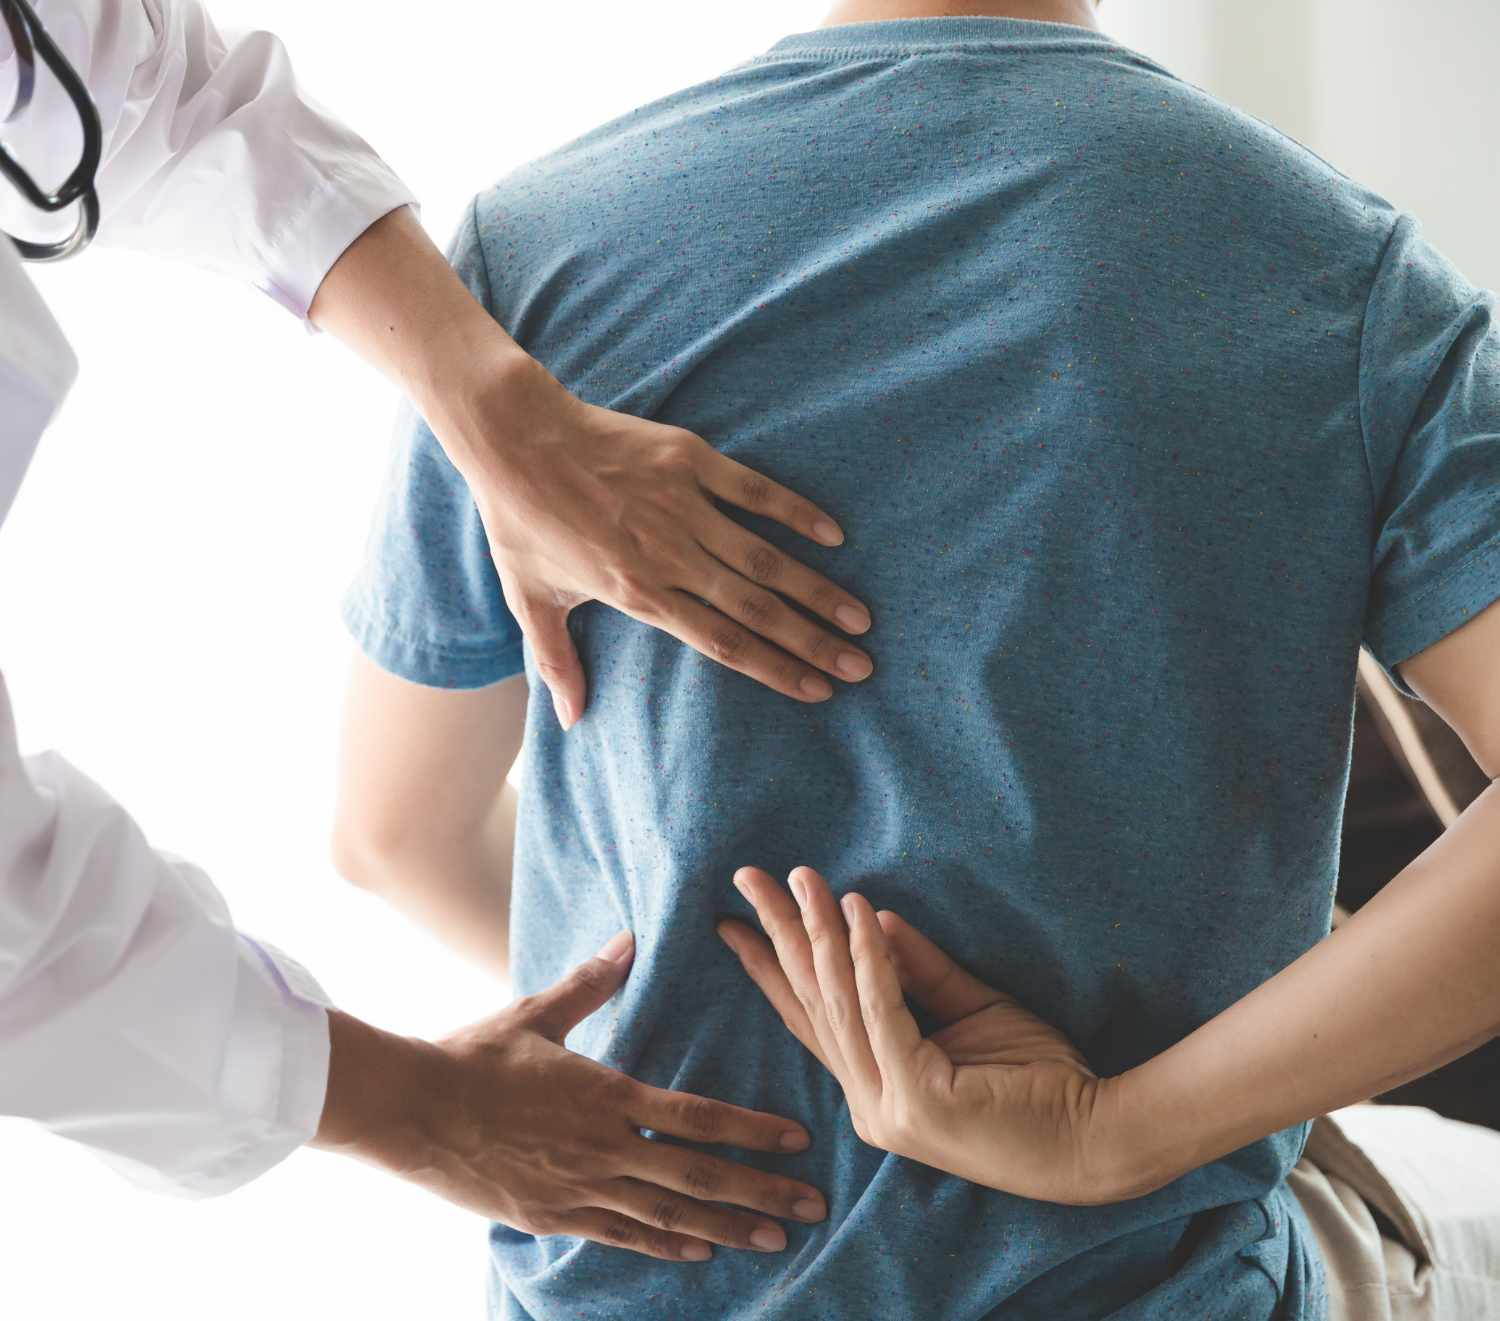 physiotherapist-working-with-patient-in-clinic-clo-8CGQ6AW.jpg